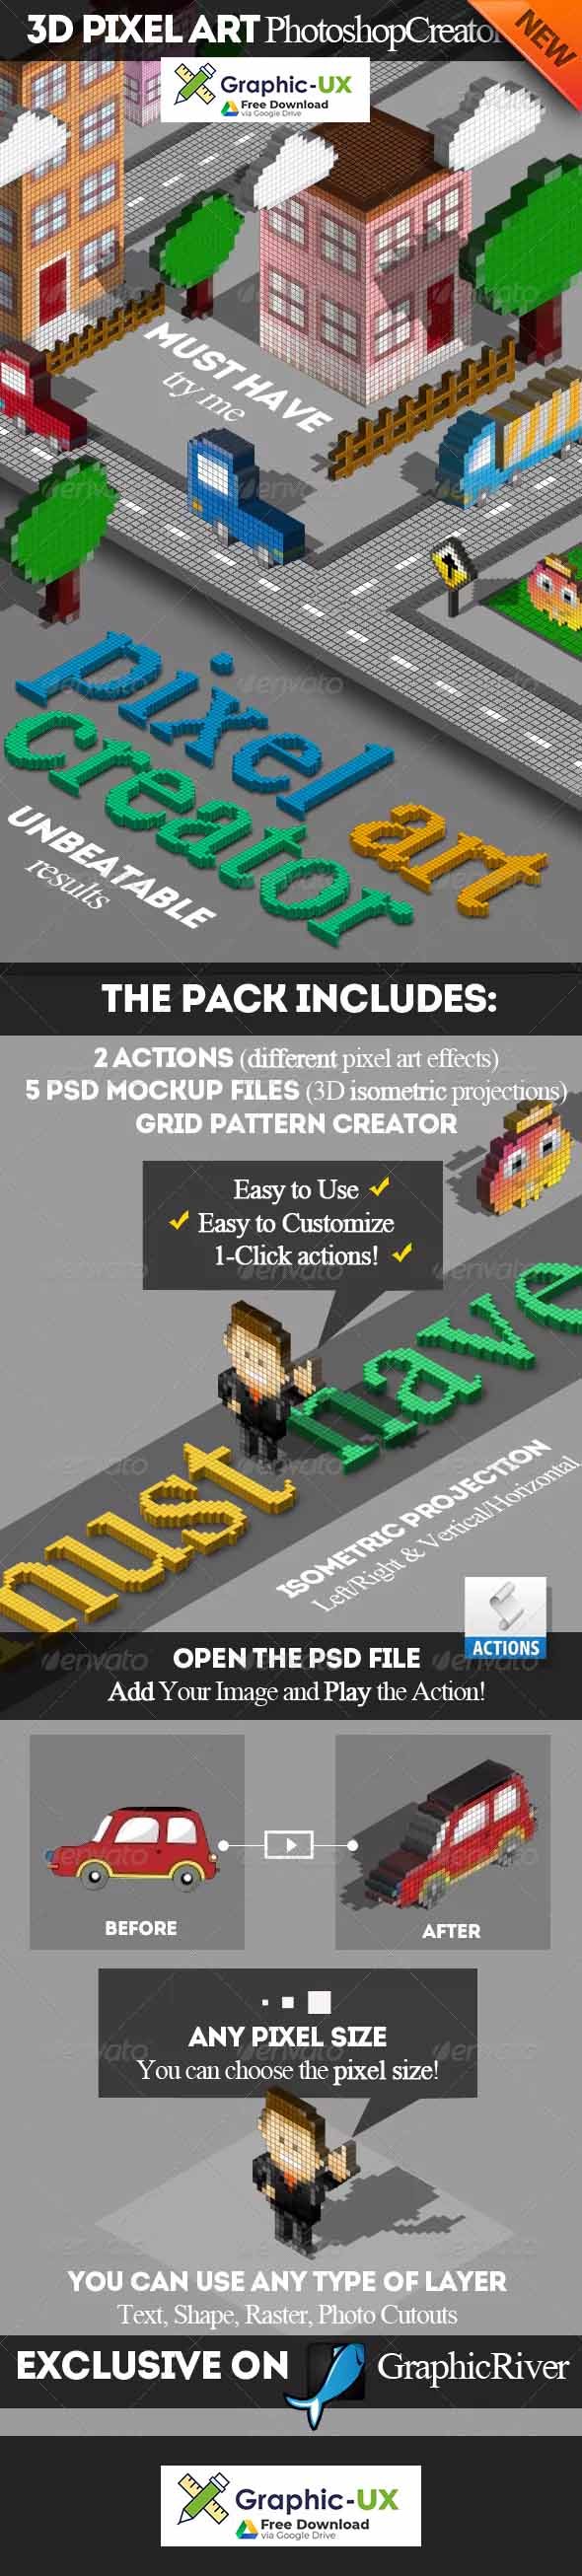 3D Pixel Art Photoshop Creator free download – GraphicUX